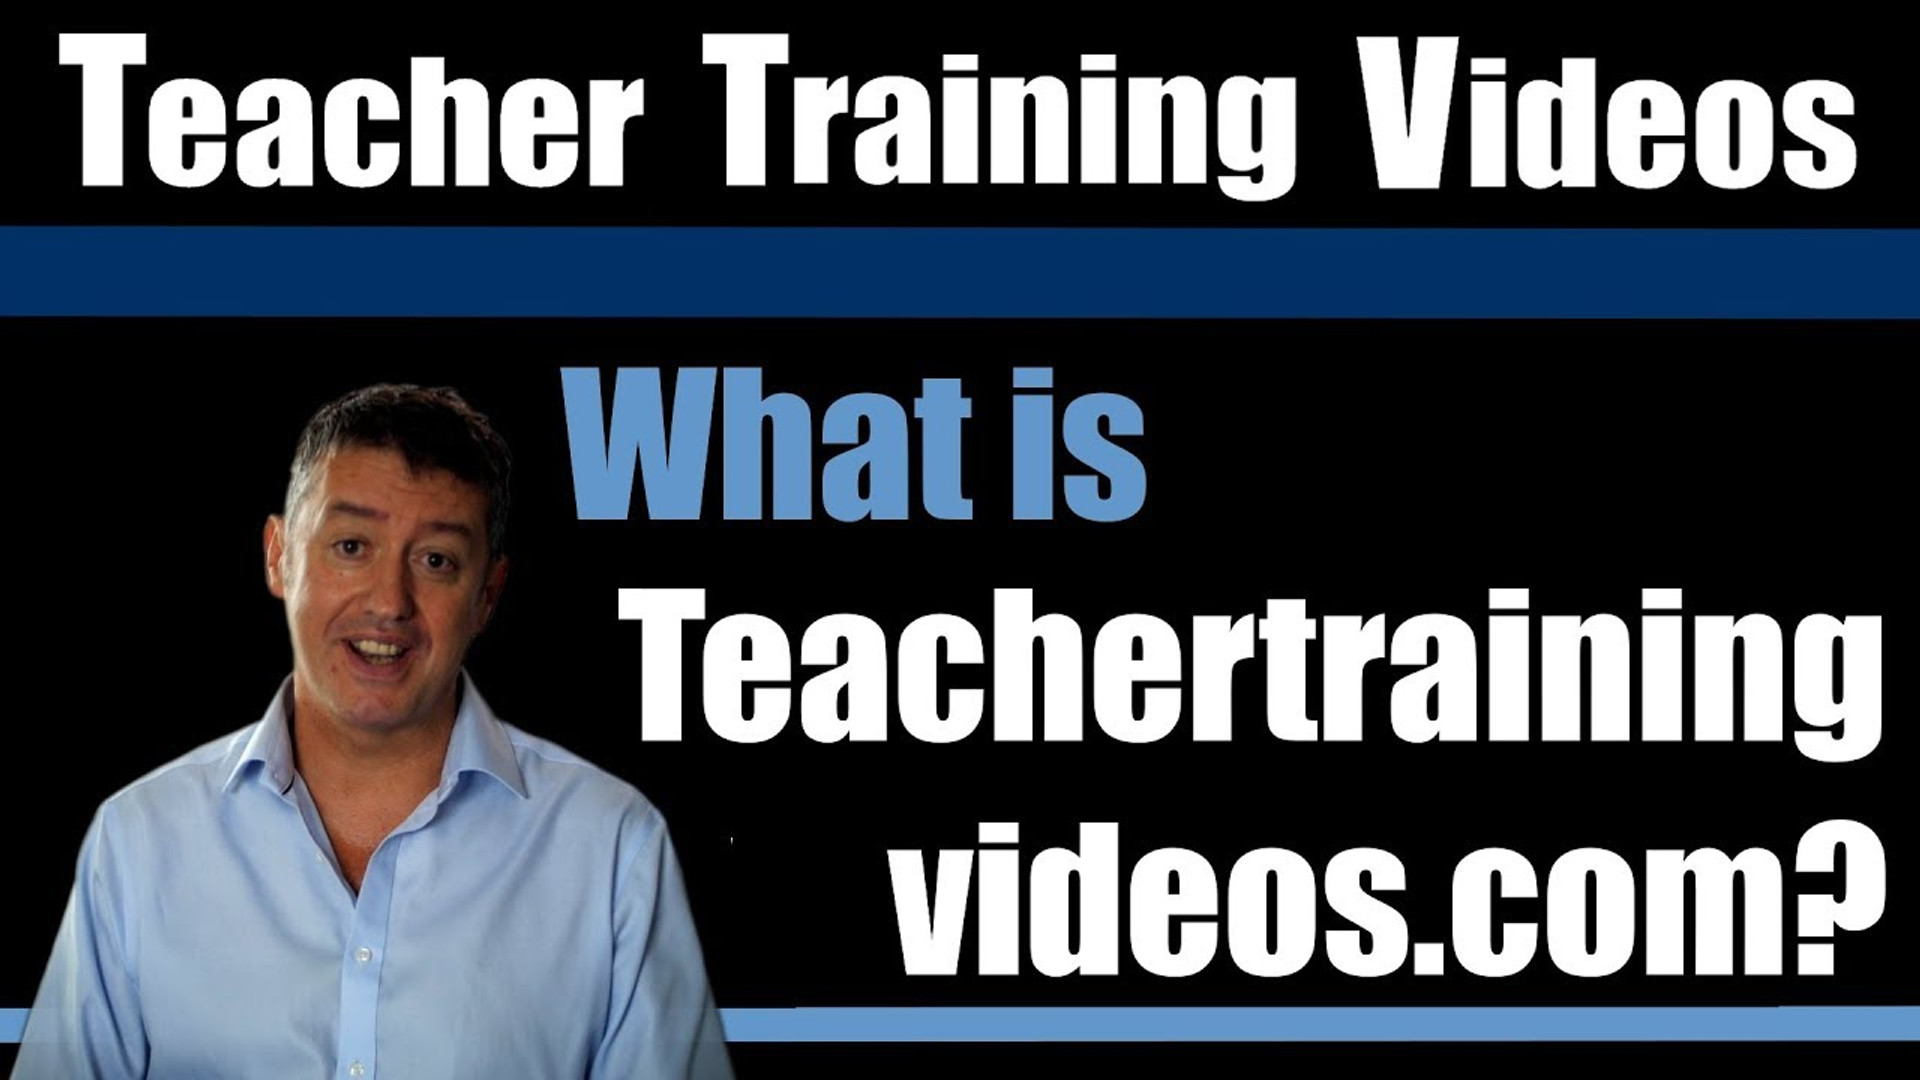 What is Teacher Training Videos.com? Quick Video Introduction